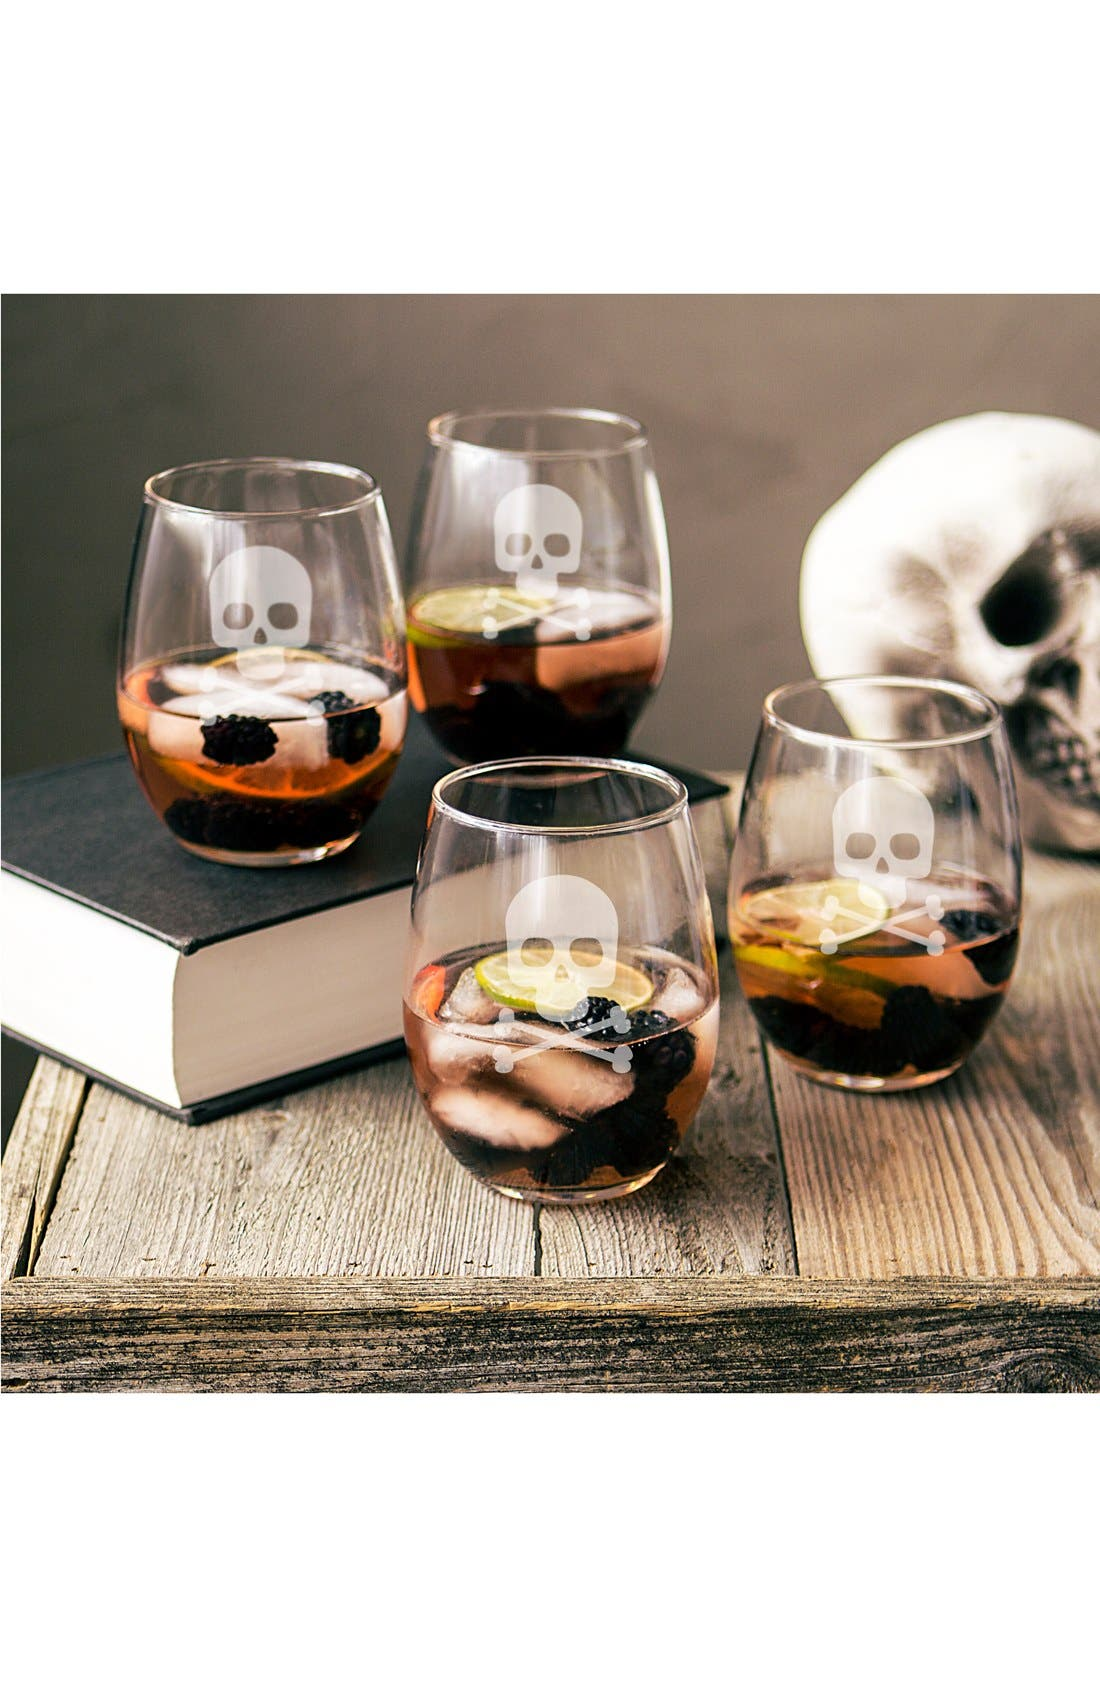 Main Image - Cathy's Concepts Skull & Crossbones Set of 4 Stemless Wine Glasses